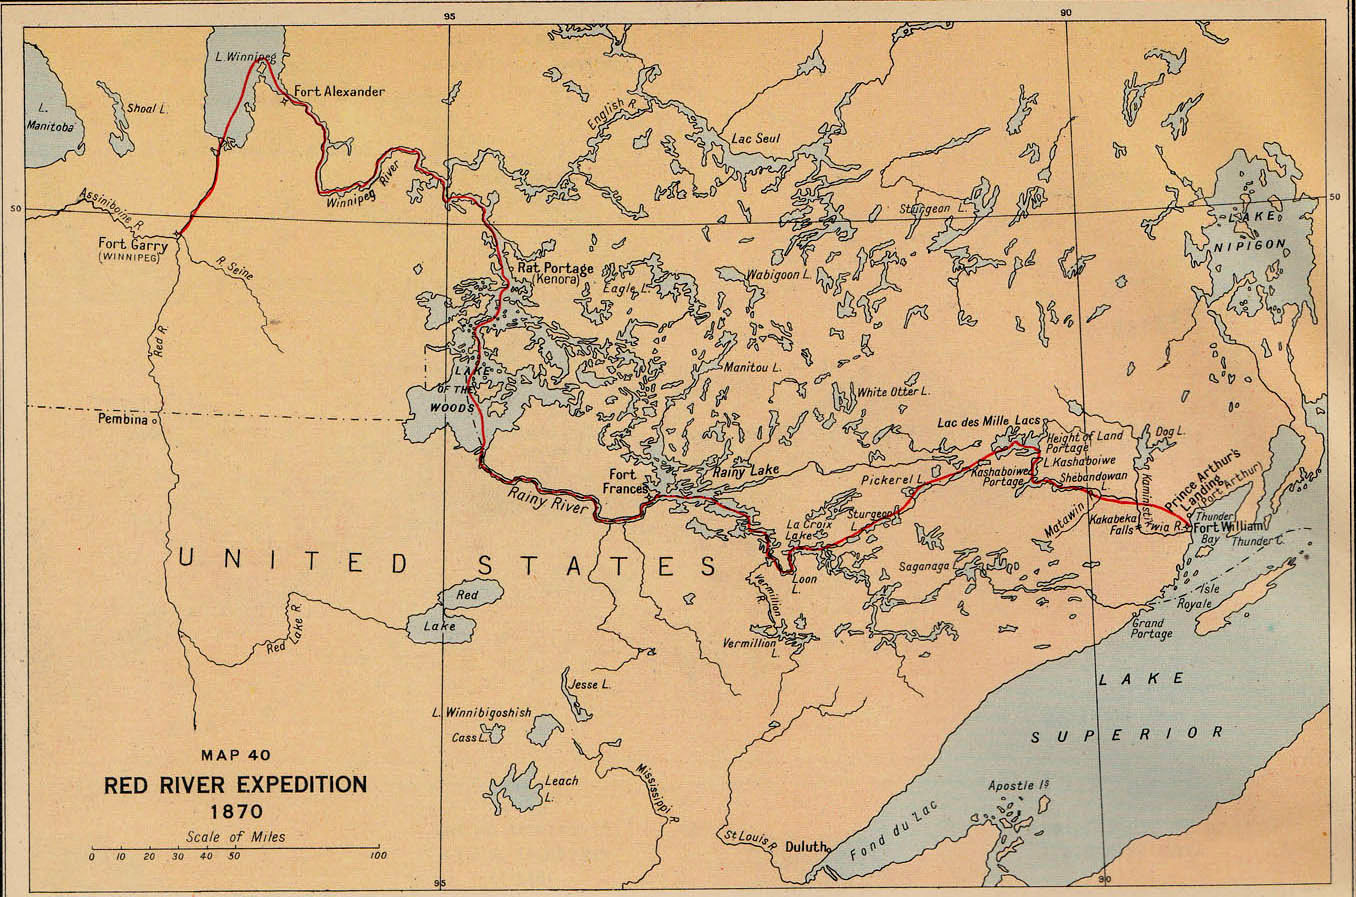 Mapa de l'expedició al Riu Vermell (1870). Procedent de Lawrence J. Burpee, editor; An Historical Atlas of Canadà, Toronto, Thomas Nelson and Sons, 1927.